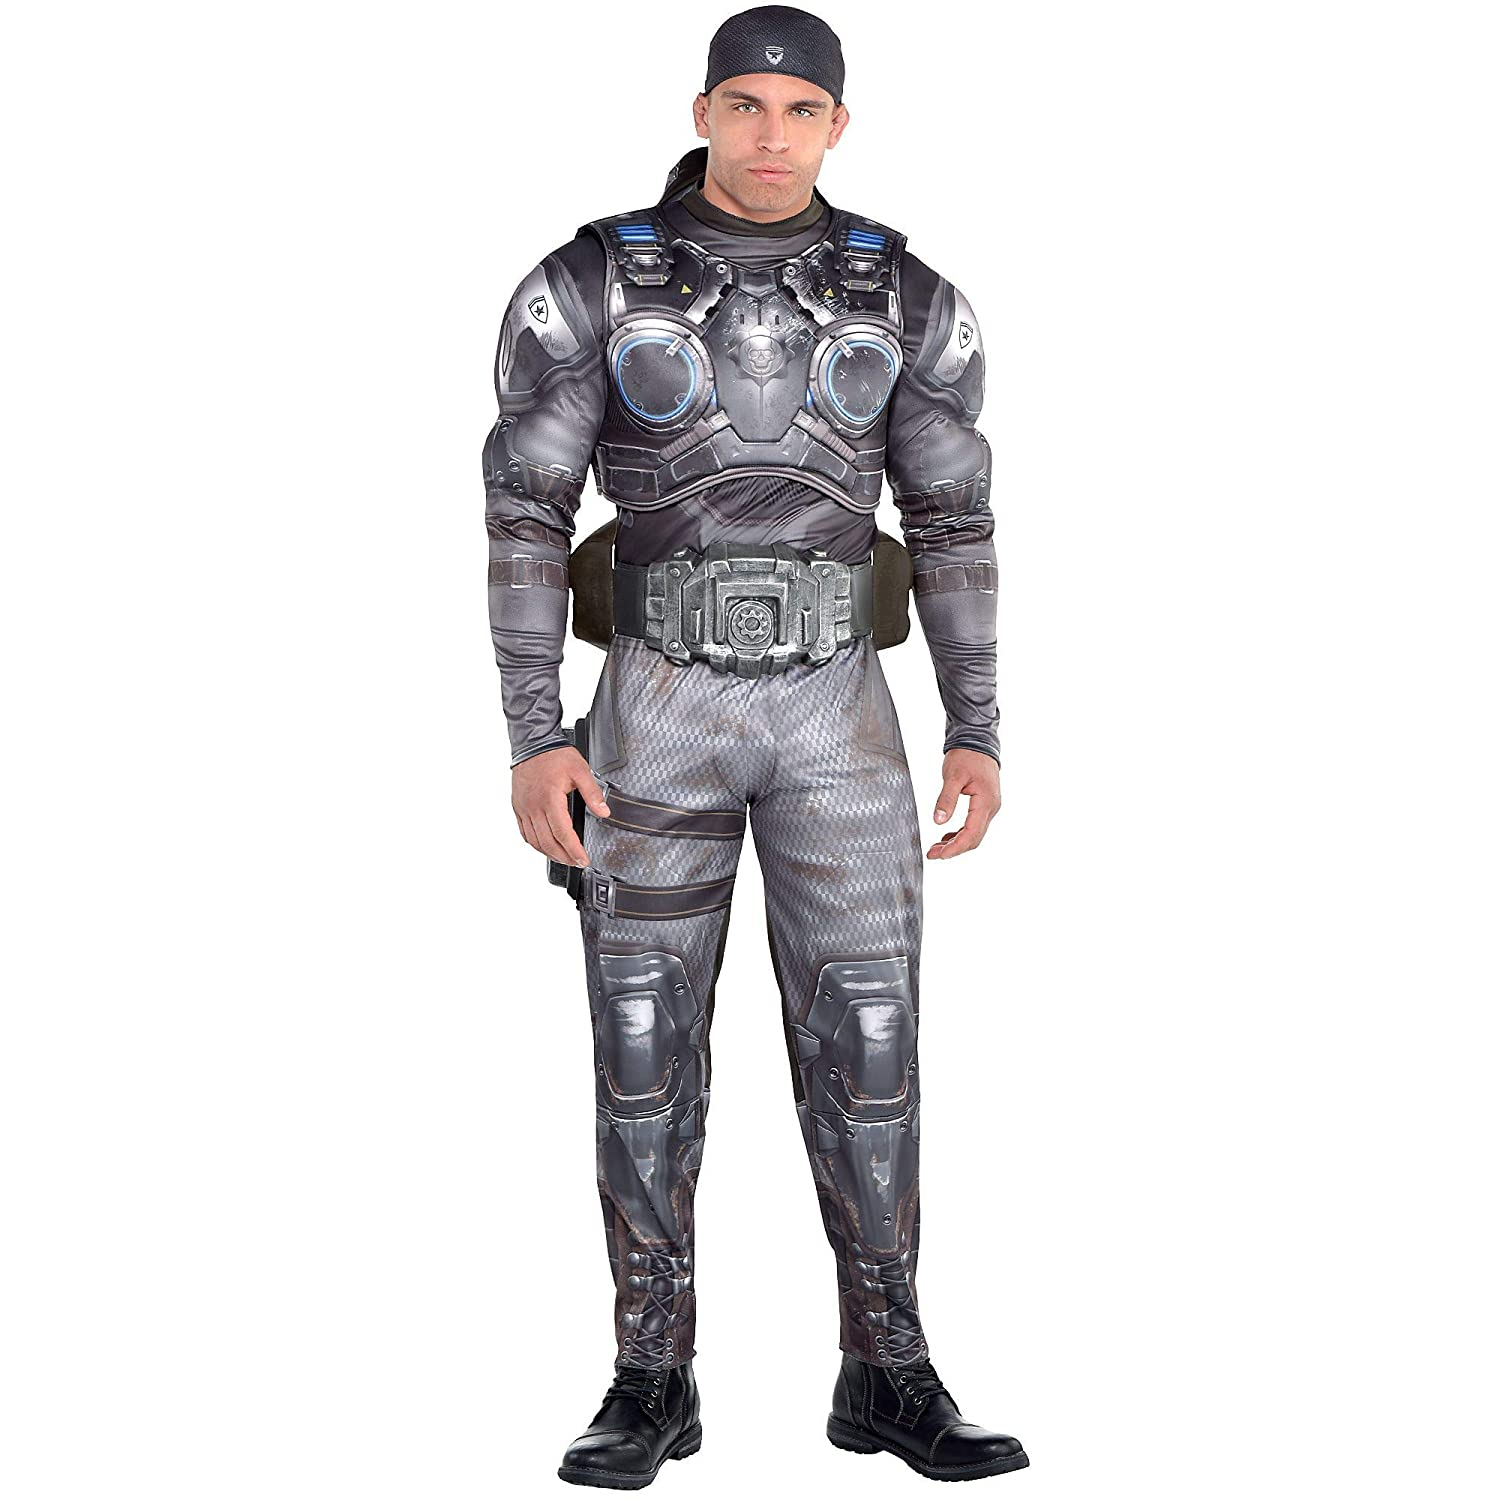 Amazon.com: Party City Marcus Fenix Halloween Muscle Disfraz ...